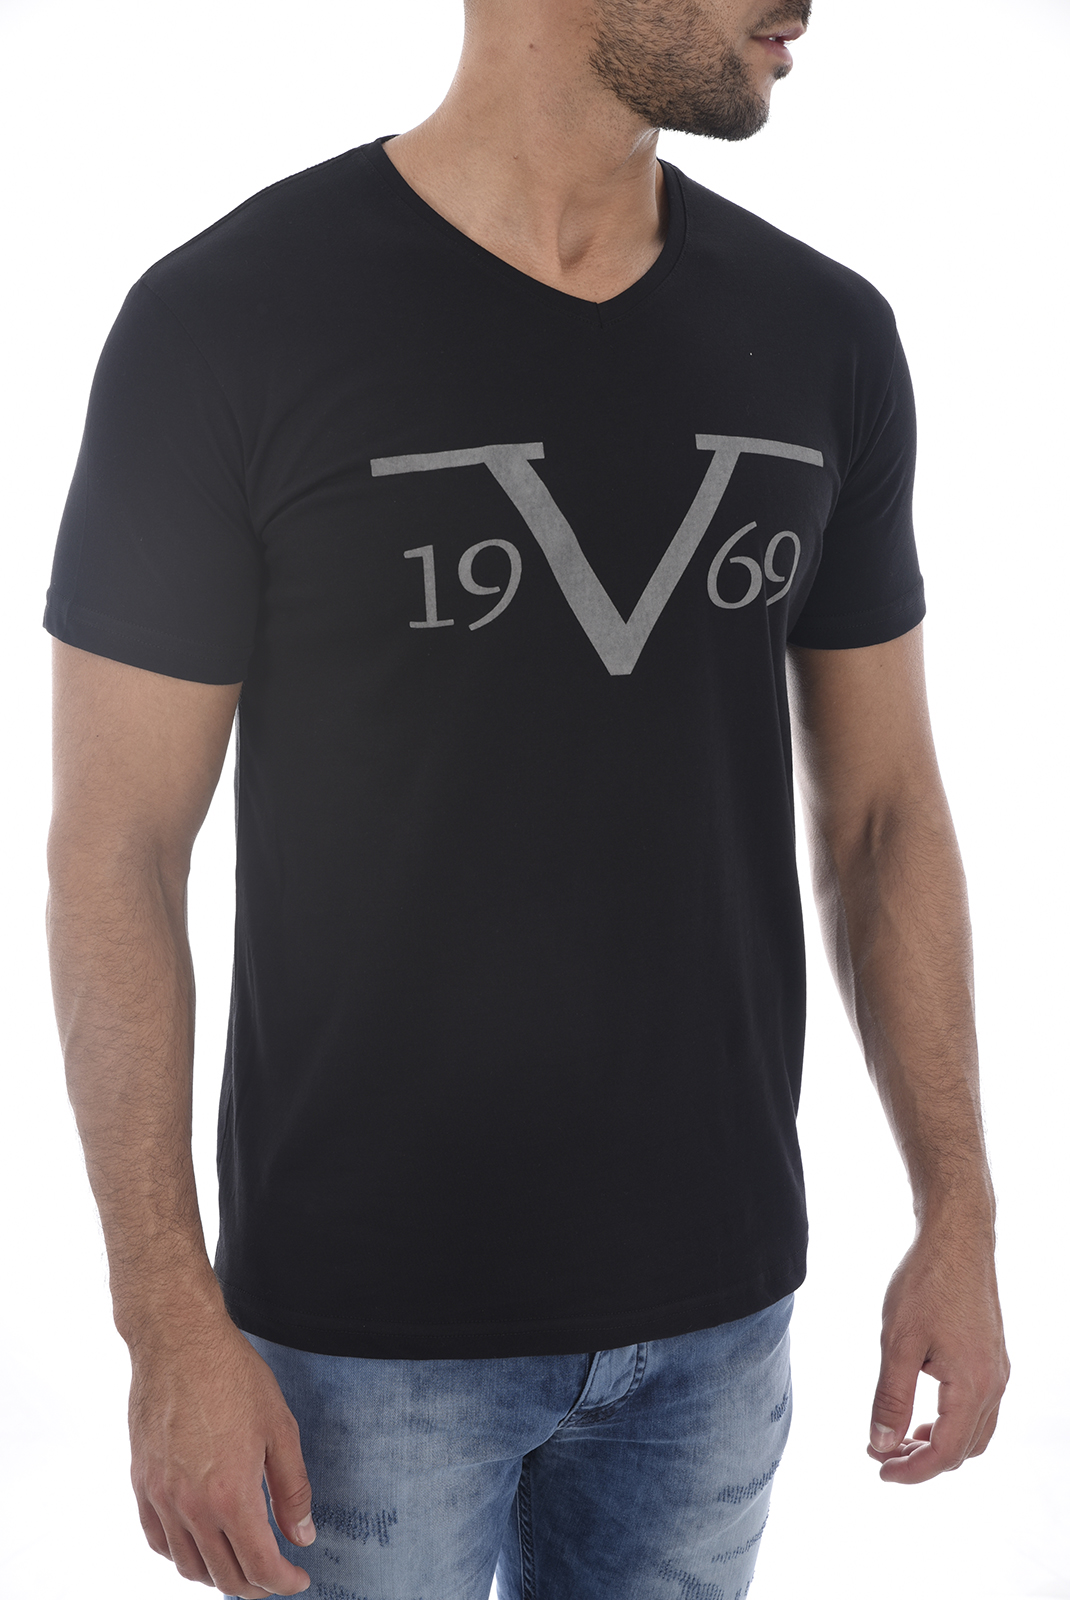 Tee-shirts  19V69 by Versace 1969 SALERNE 2 NOIR